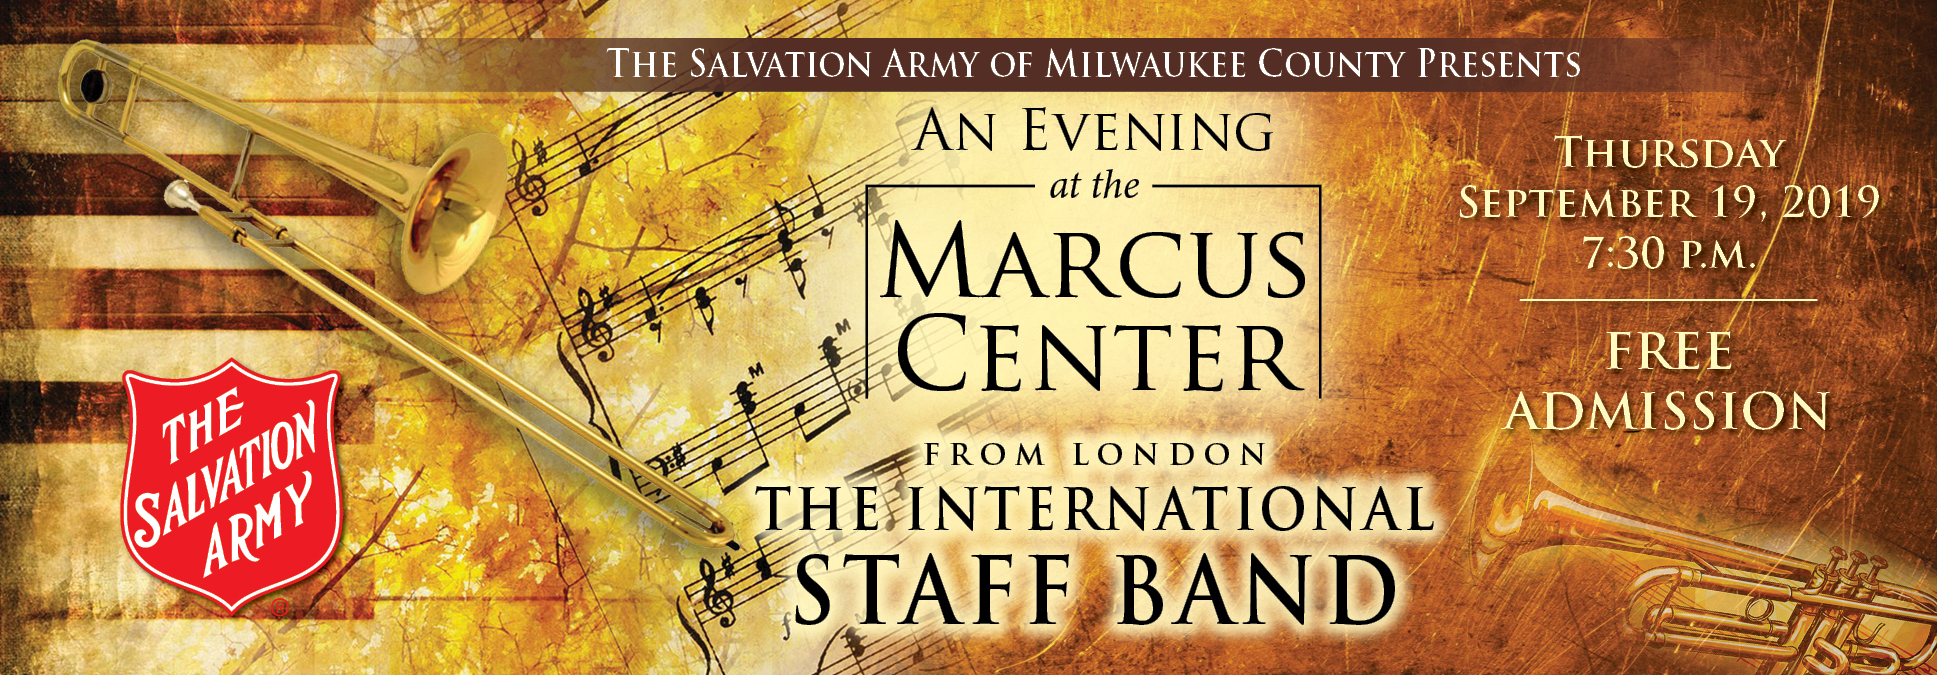 The Salvation Army An Evening at the Marcus Center